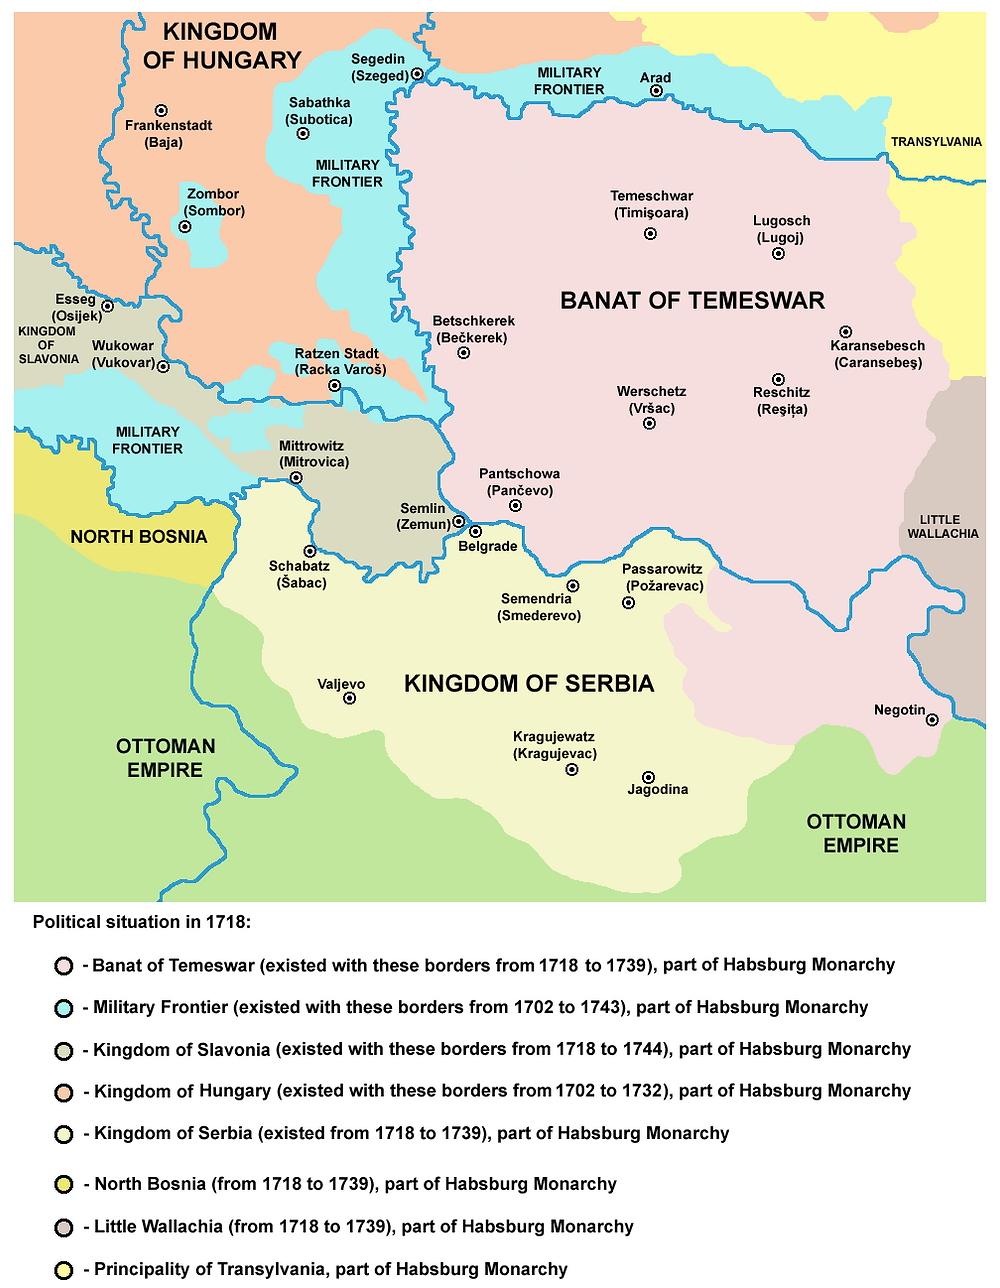 The region before the Treaty of Belgrade